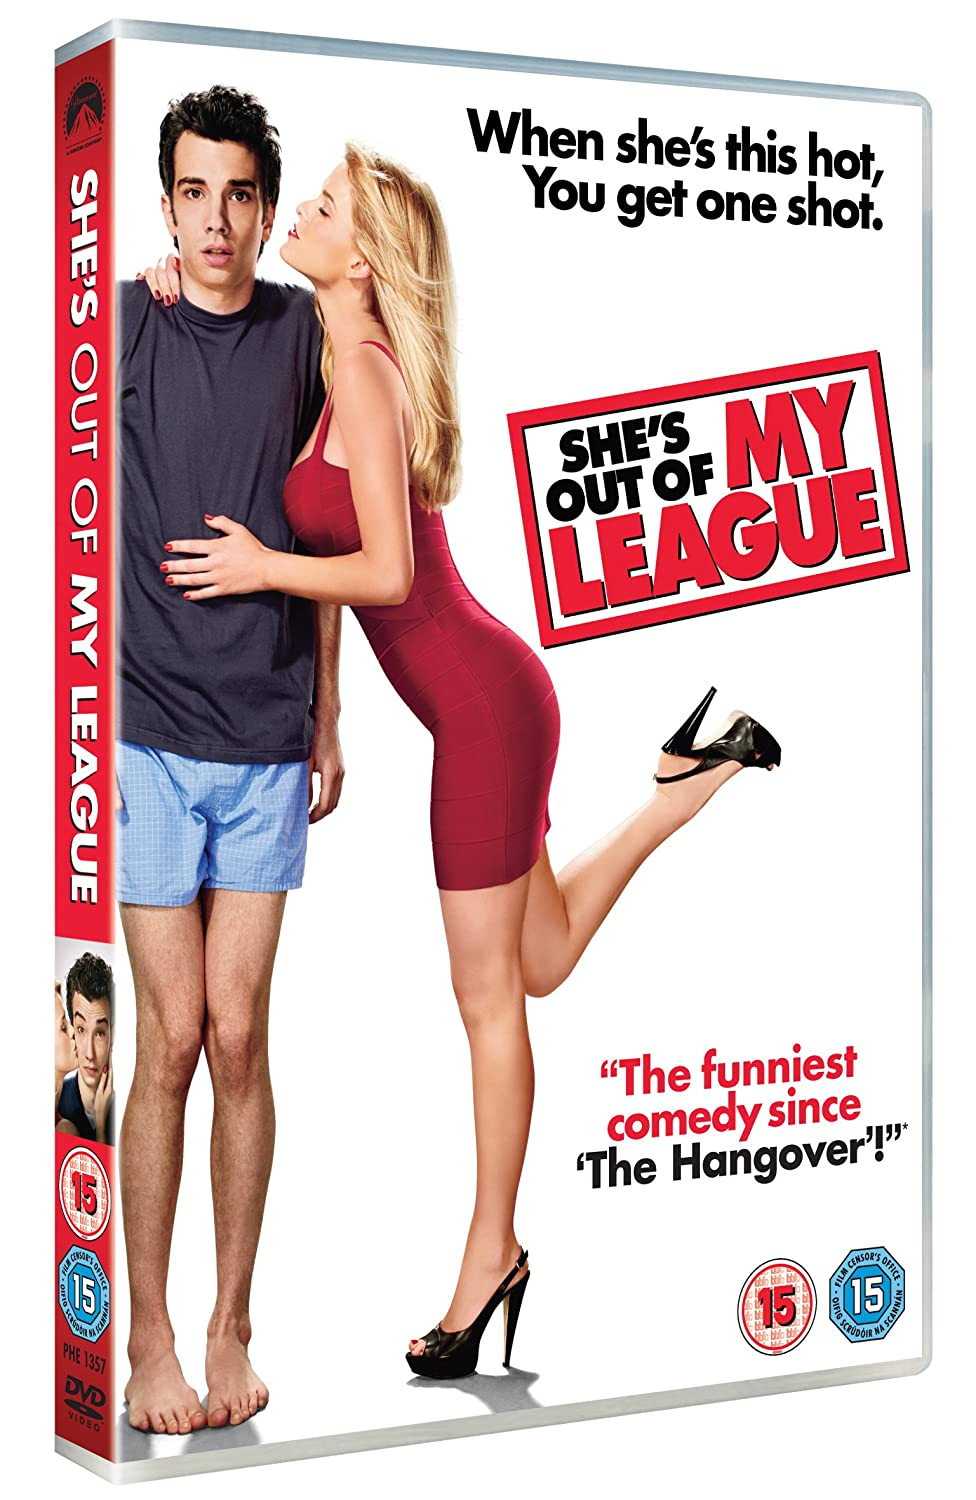 review she s out of my league Kirk can't believe it when a successful an incredibly gorgeous babe, falls for him now he has to figure out how to make the relationship work, even though she's totally out of his league.